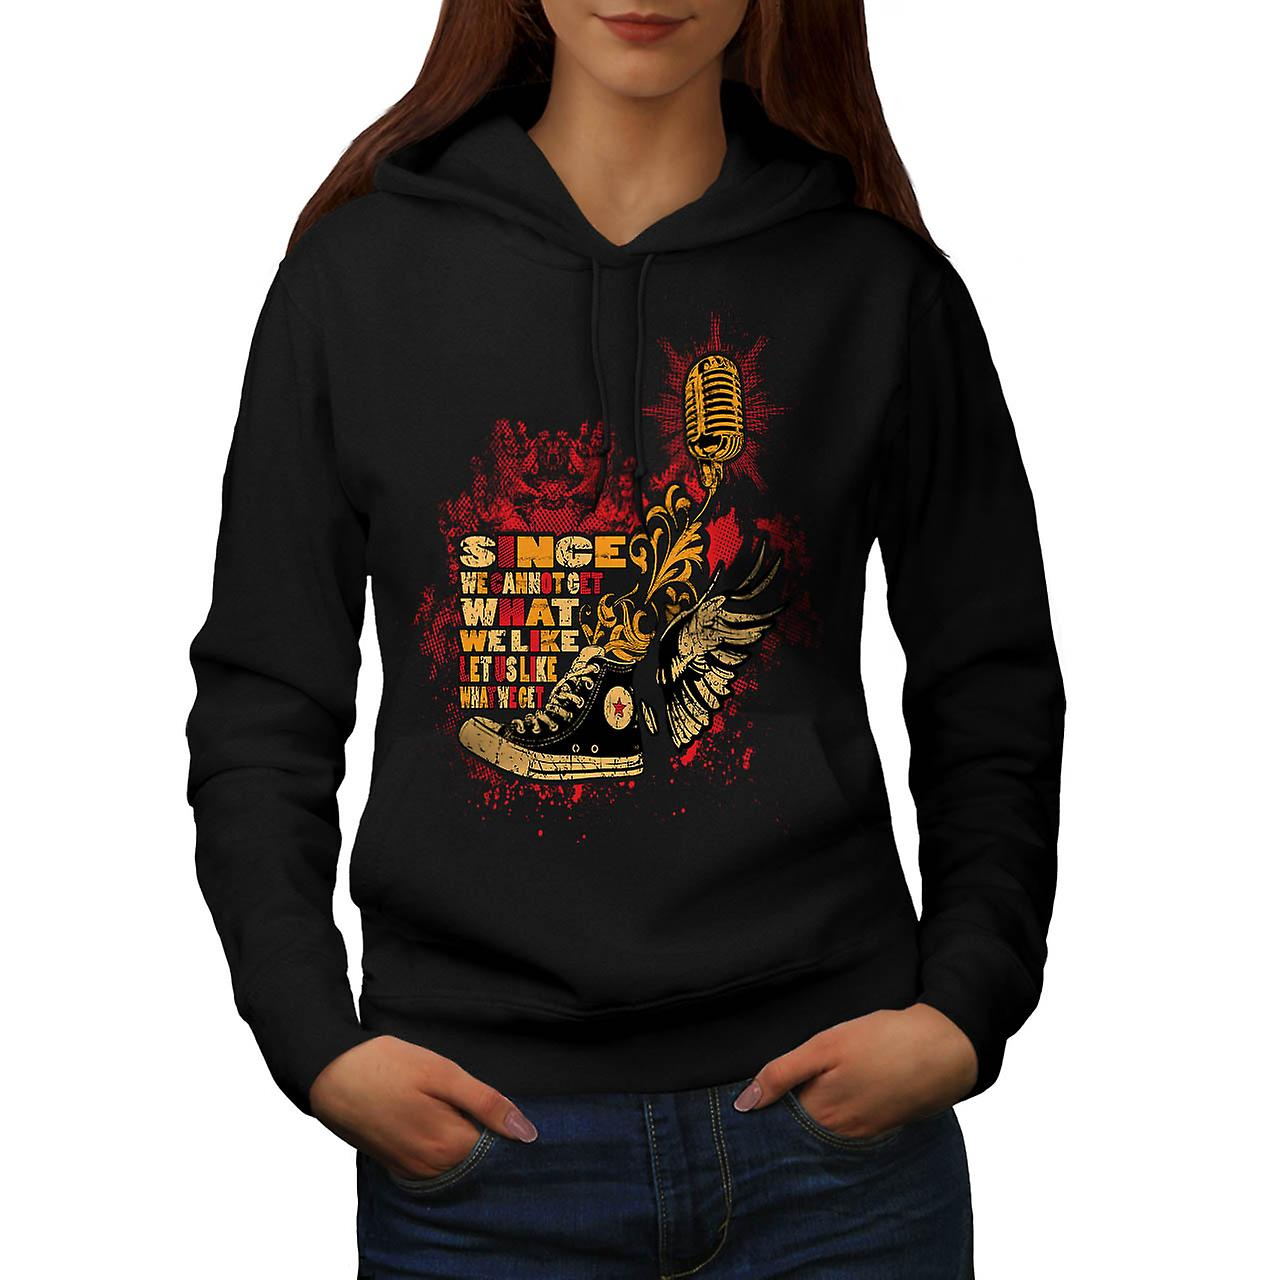 Like What We Get Vintage Women Black Hoodie | Wellcoda